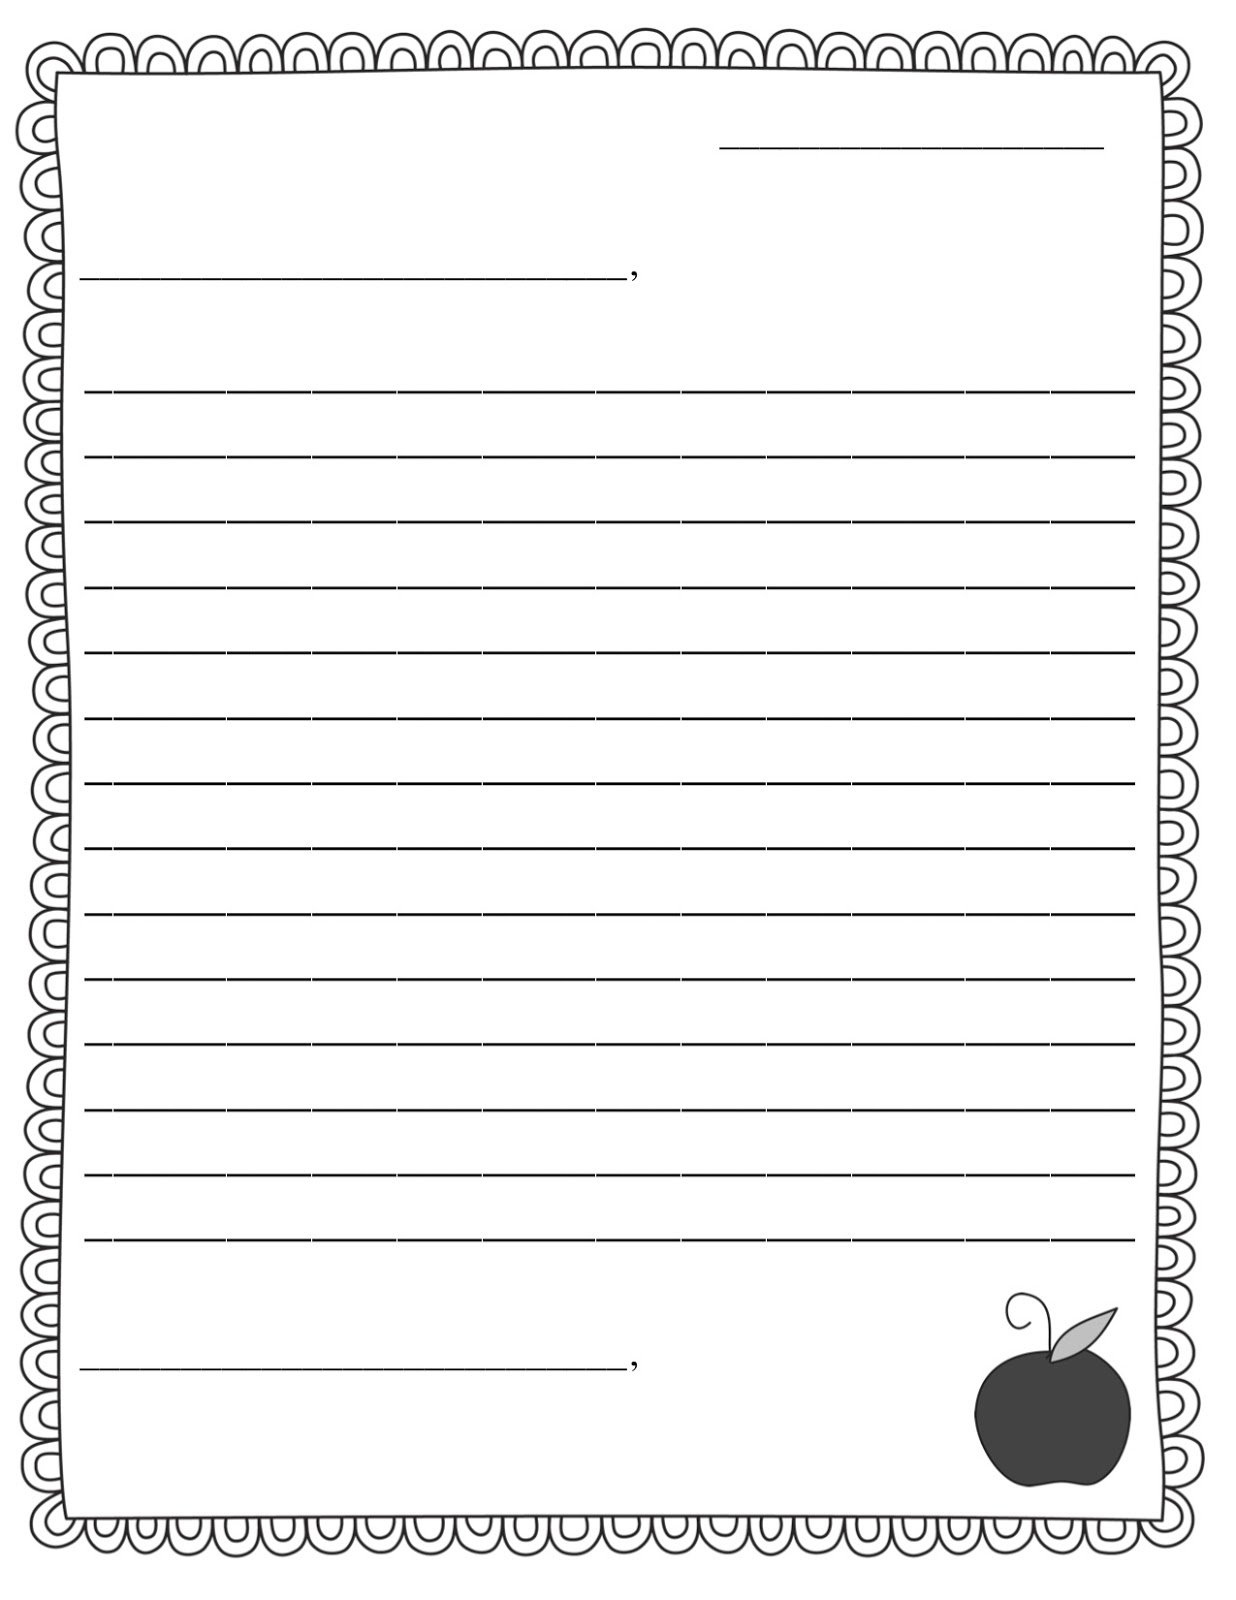 picture about Printable Friendly Letter Template referred to as PEN Close friend Information + Welcoming LETTER FREEBIE - Trainer Principle Manufacturing facility